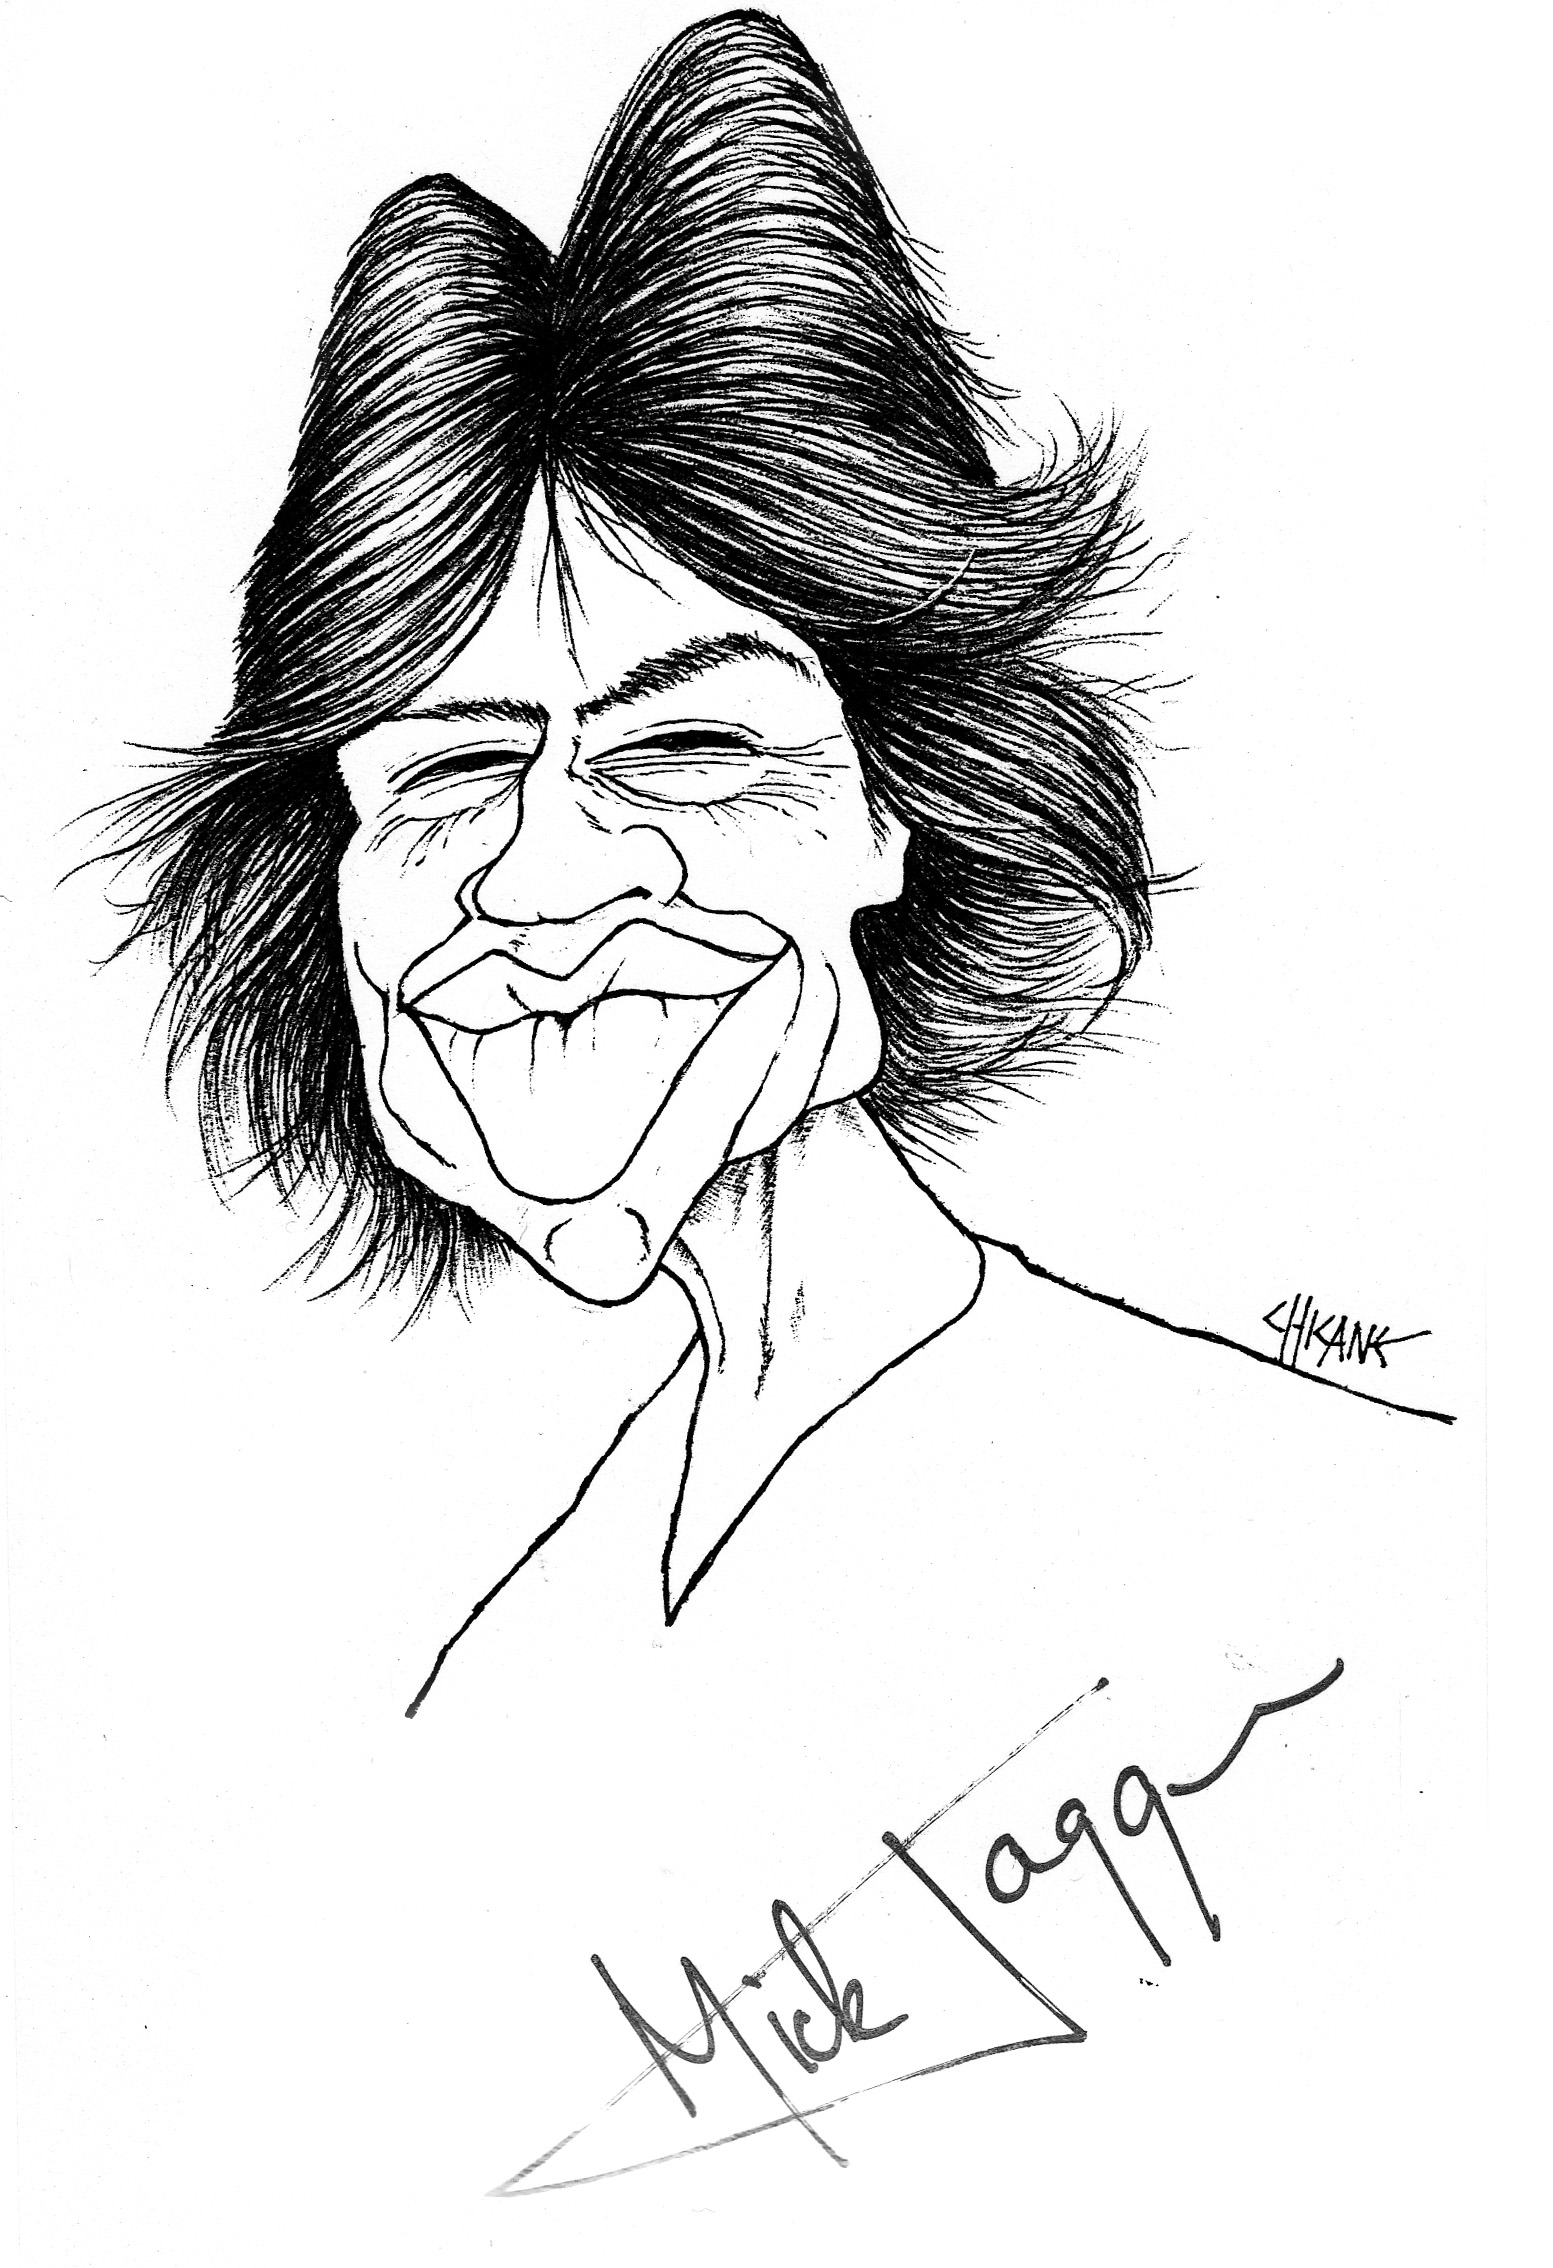 A Mick Jagger Caricature ChicanePictures